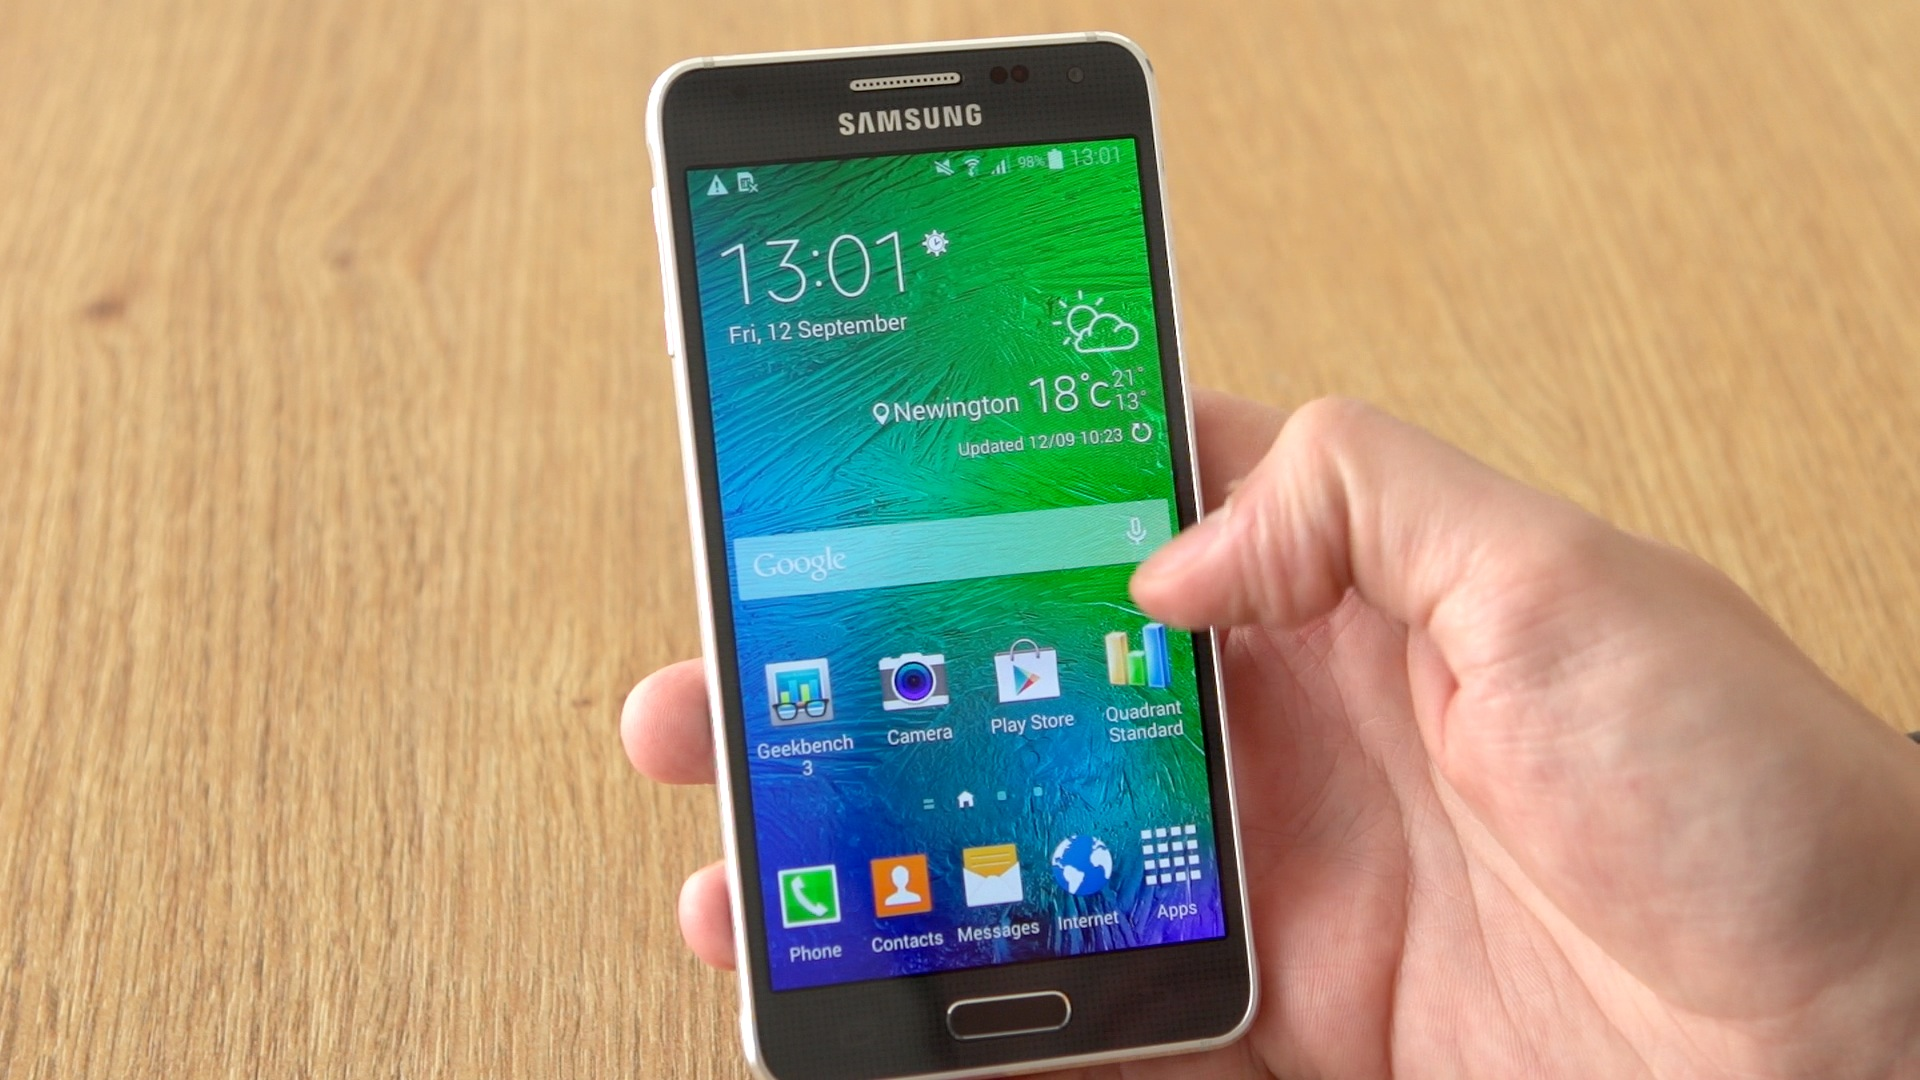 Video: Take a look at the luxurious, metal Samsung Galaxy Alpha